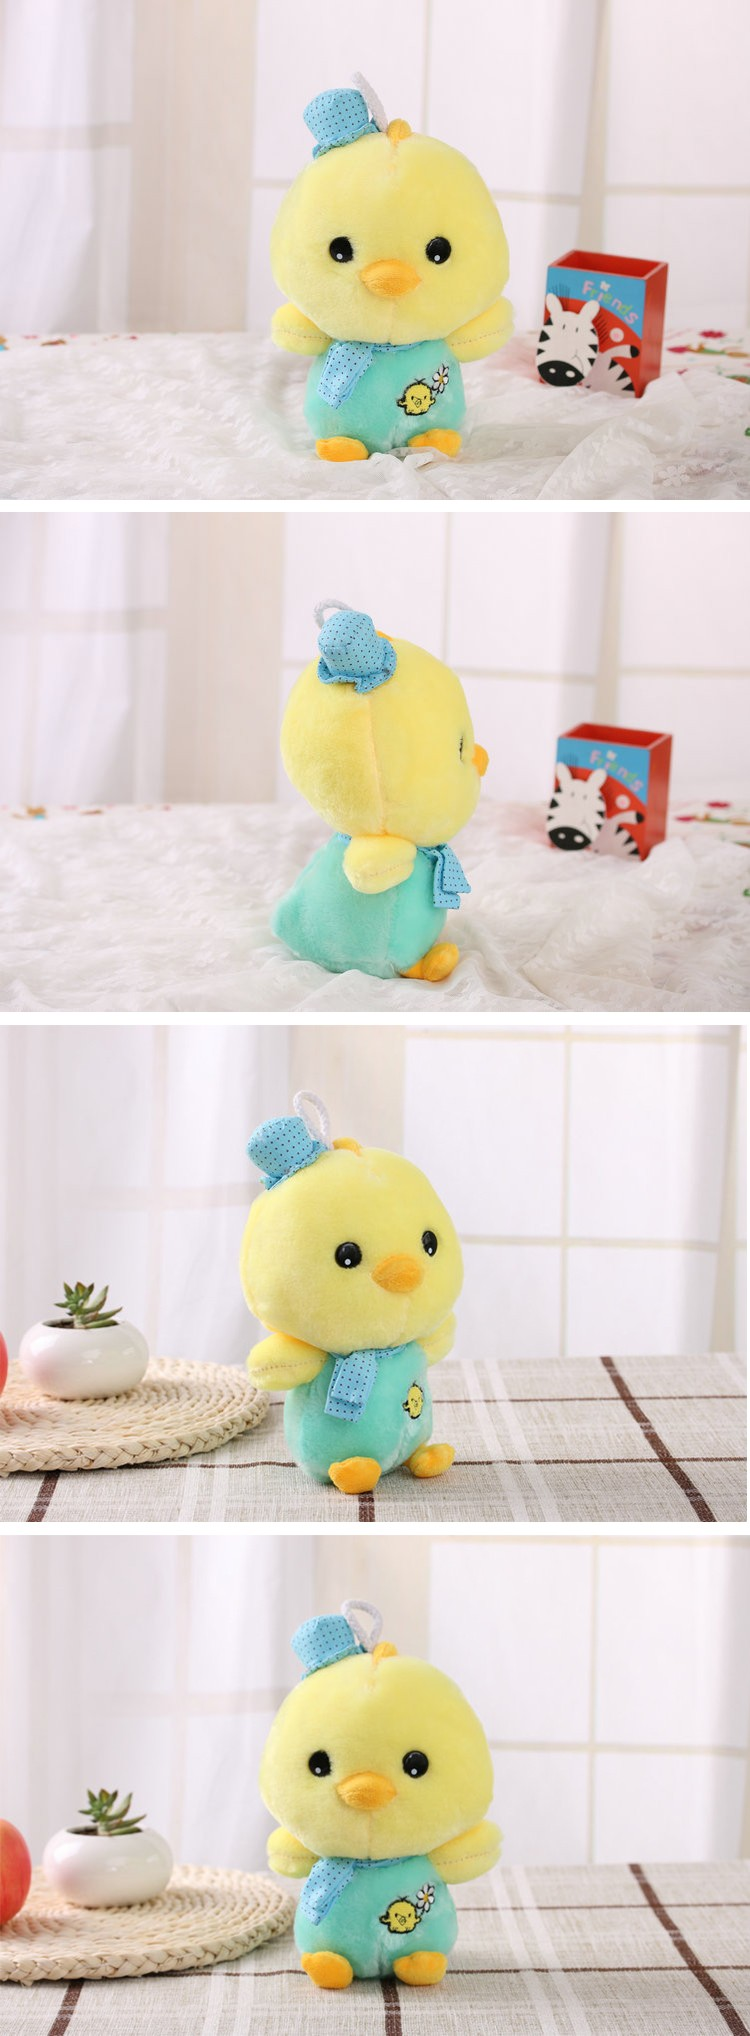 High quality machine grade claw plush toys China Factory